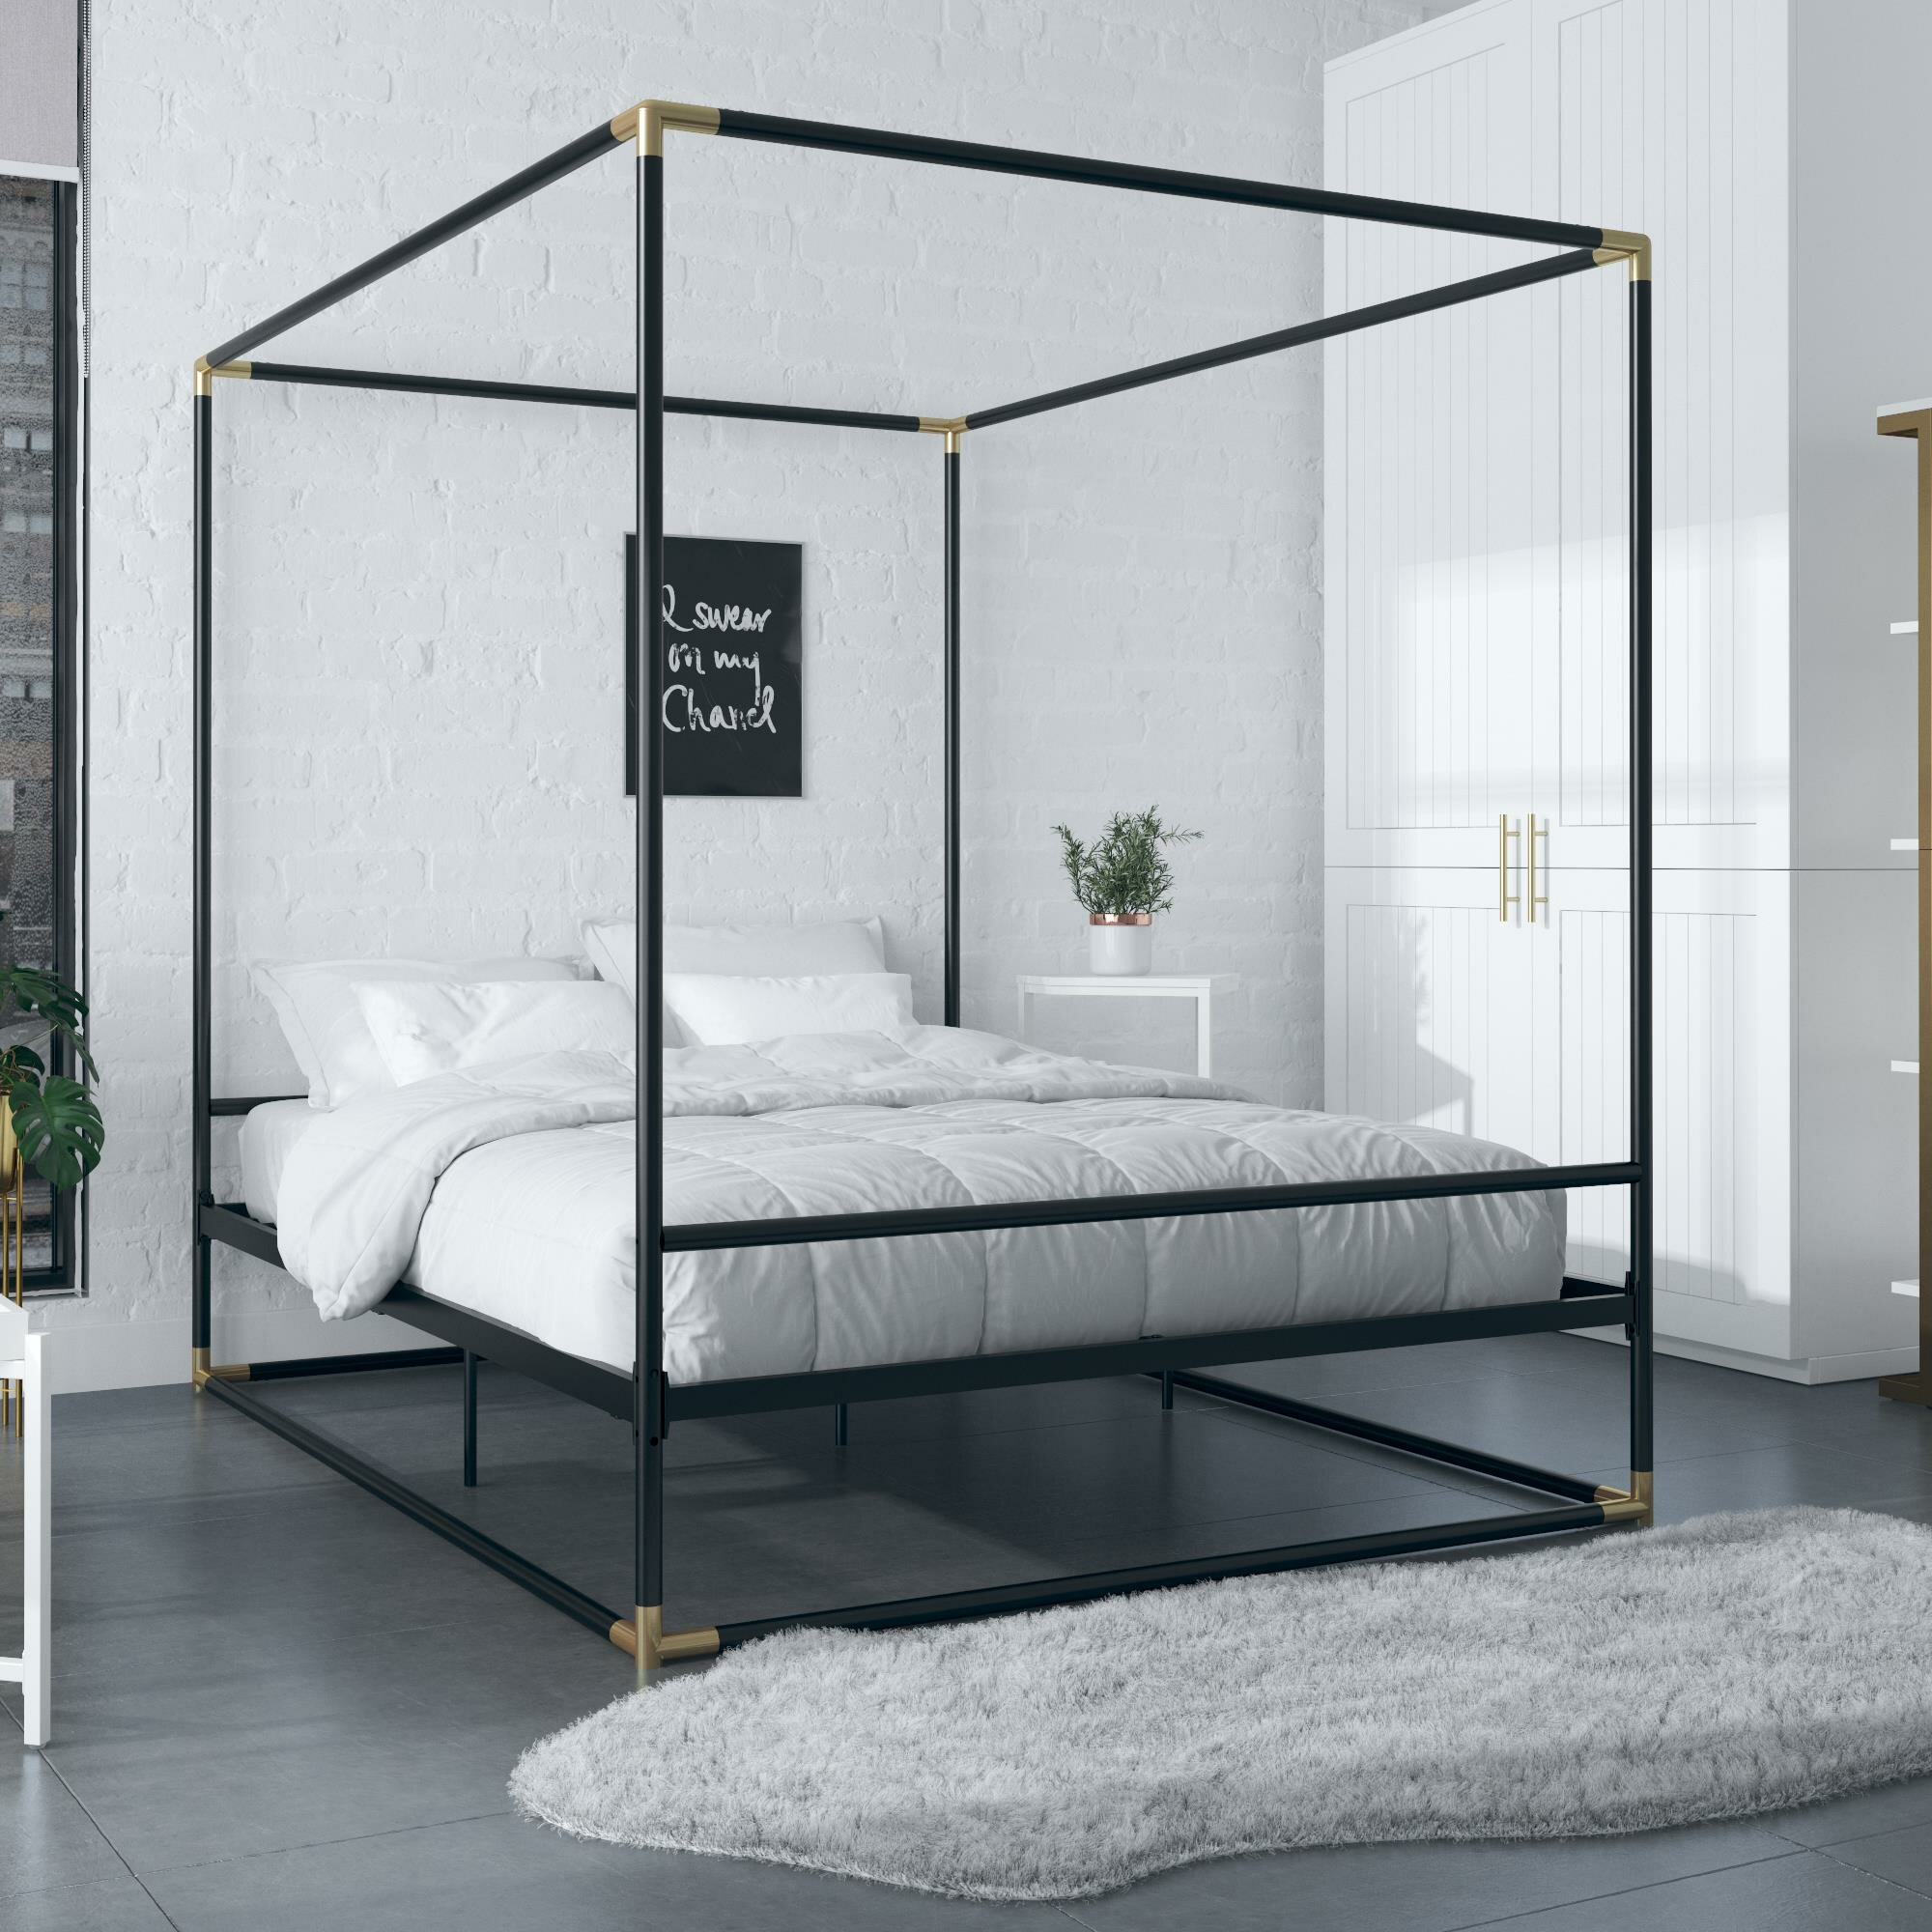 Cosmoliving By Cosmopolitan Celeste Metal Canopy Bed Reviews Wayfair